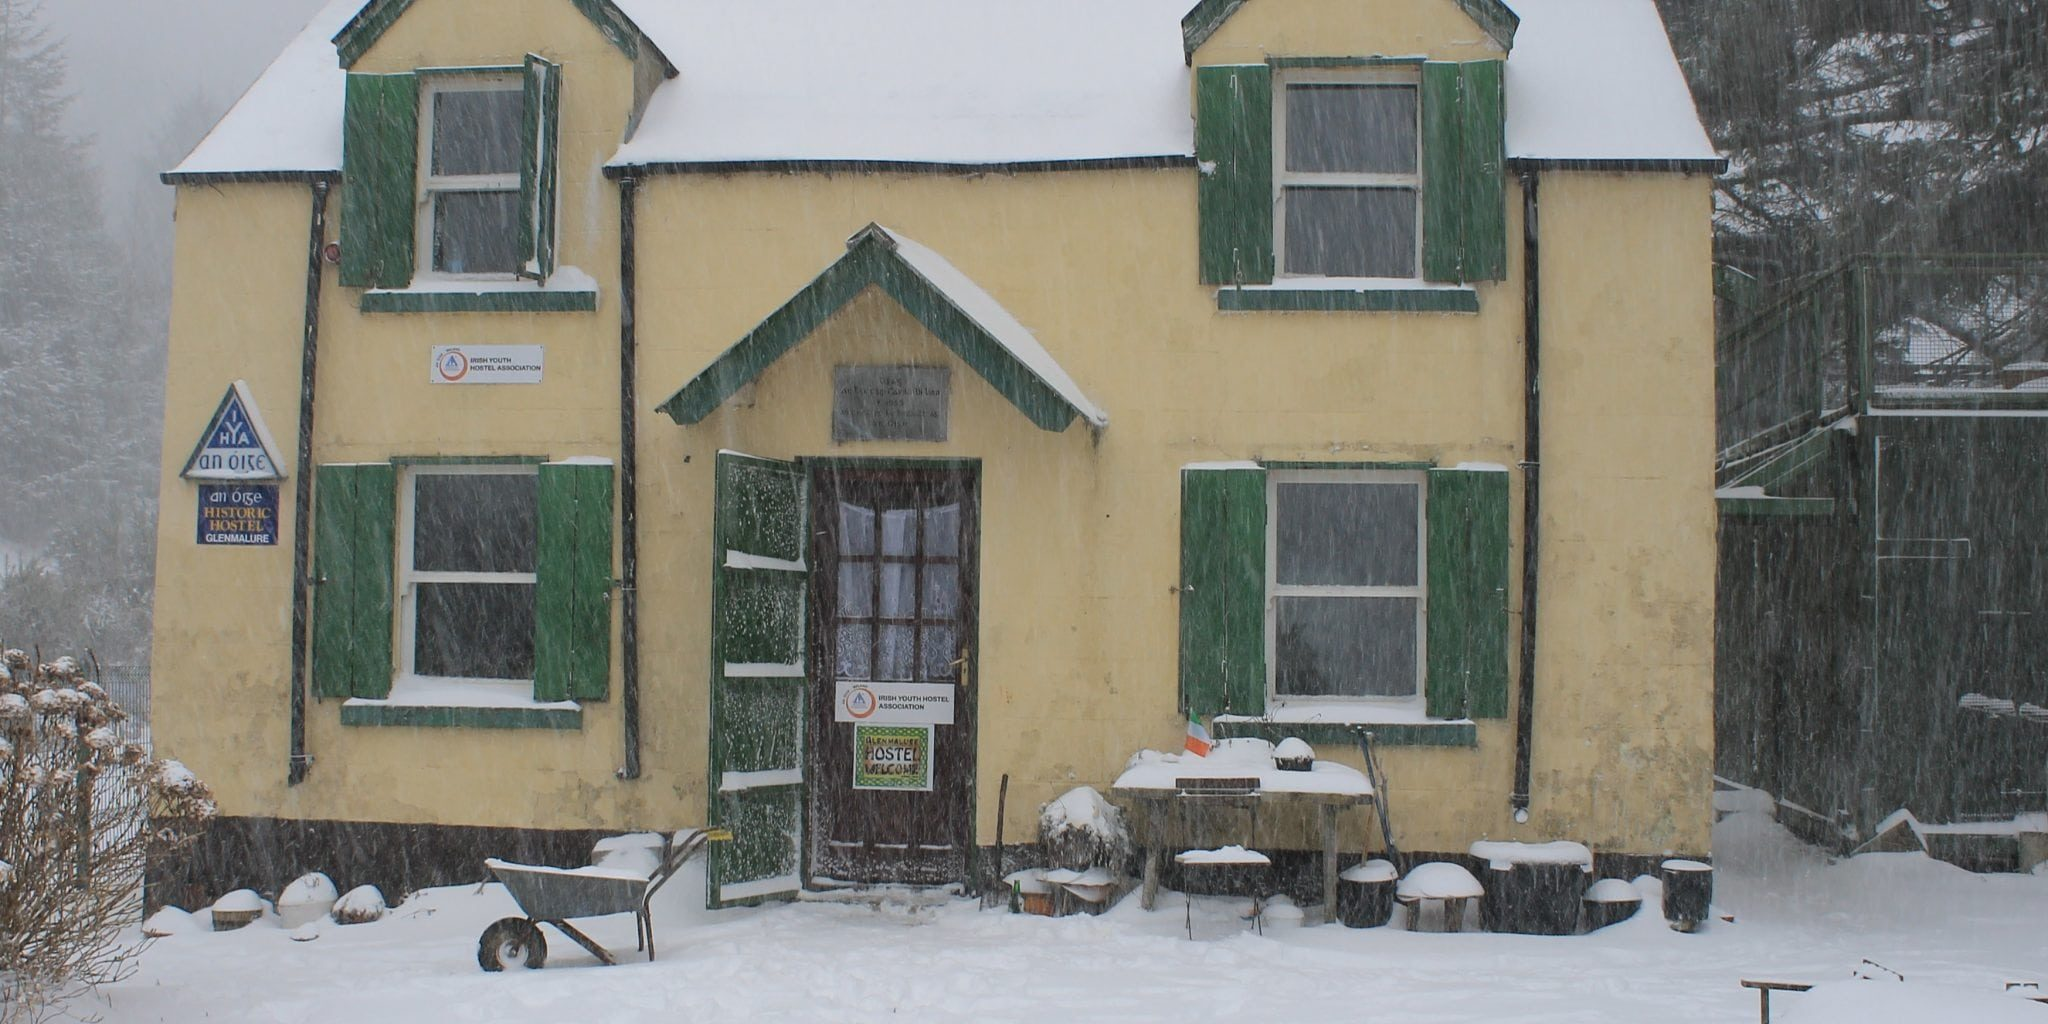 There and Back Again: The Blizzard at Glenmalure - Anoige